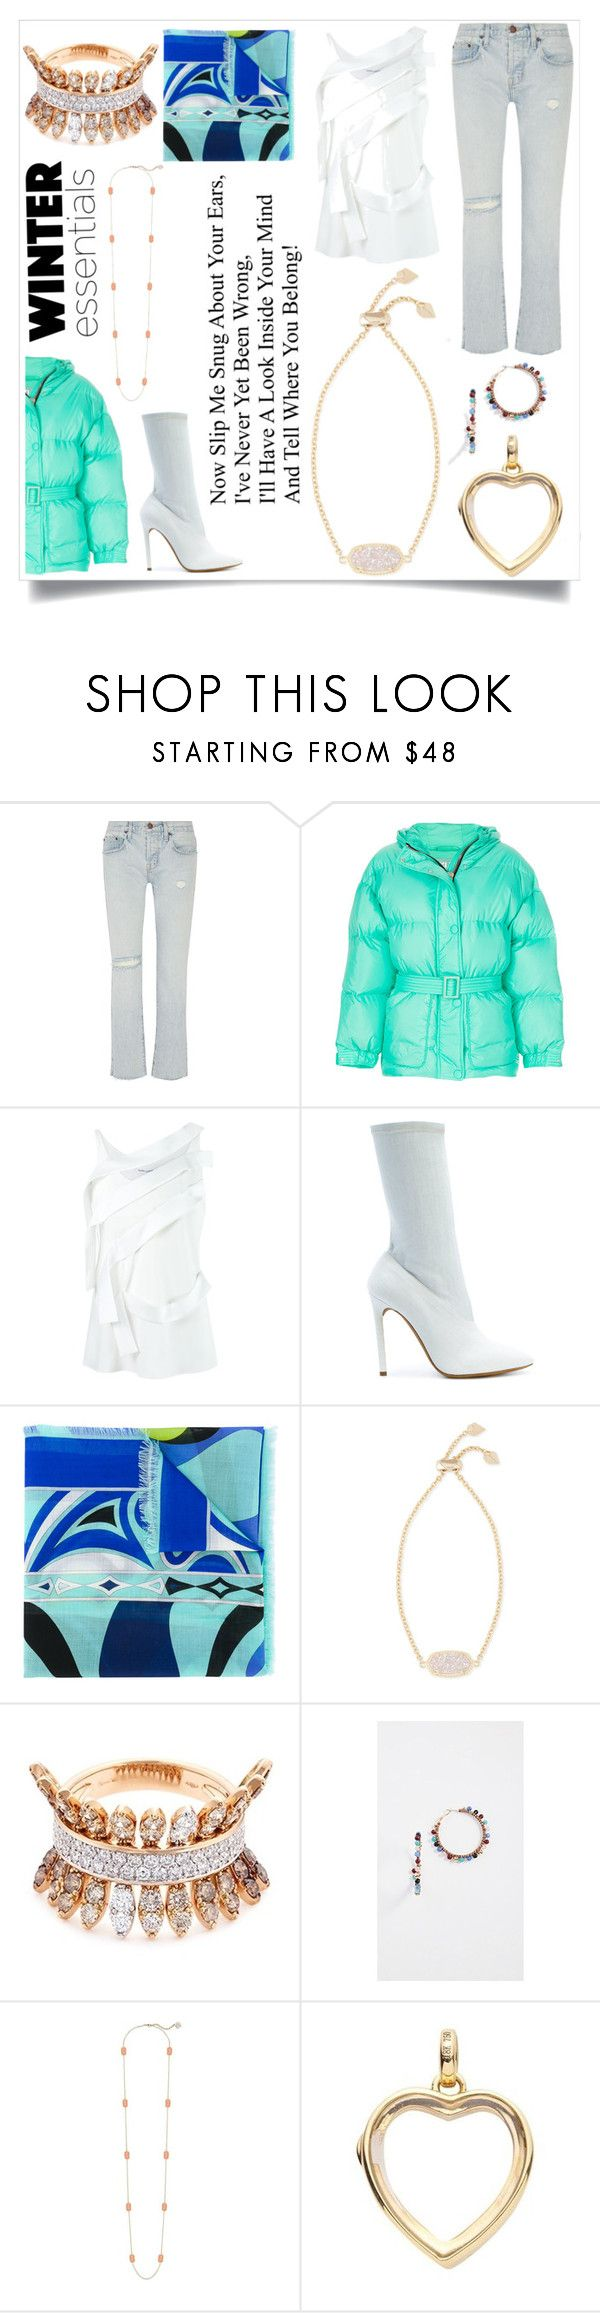 """""""You either know fashion or don't"""" by emmamegan-5678 ❤ liked on Polyvore featuring Current/Elliott, Ienki Ienki, Gloria Coelho, Yeezy by Kanye West, Emilio Pucci, Kendra Scott, FerrariFirenze, Rebecca Minkoff, Loquet and modern"""